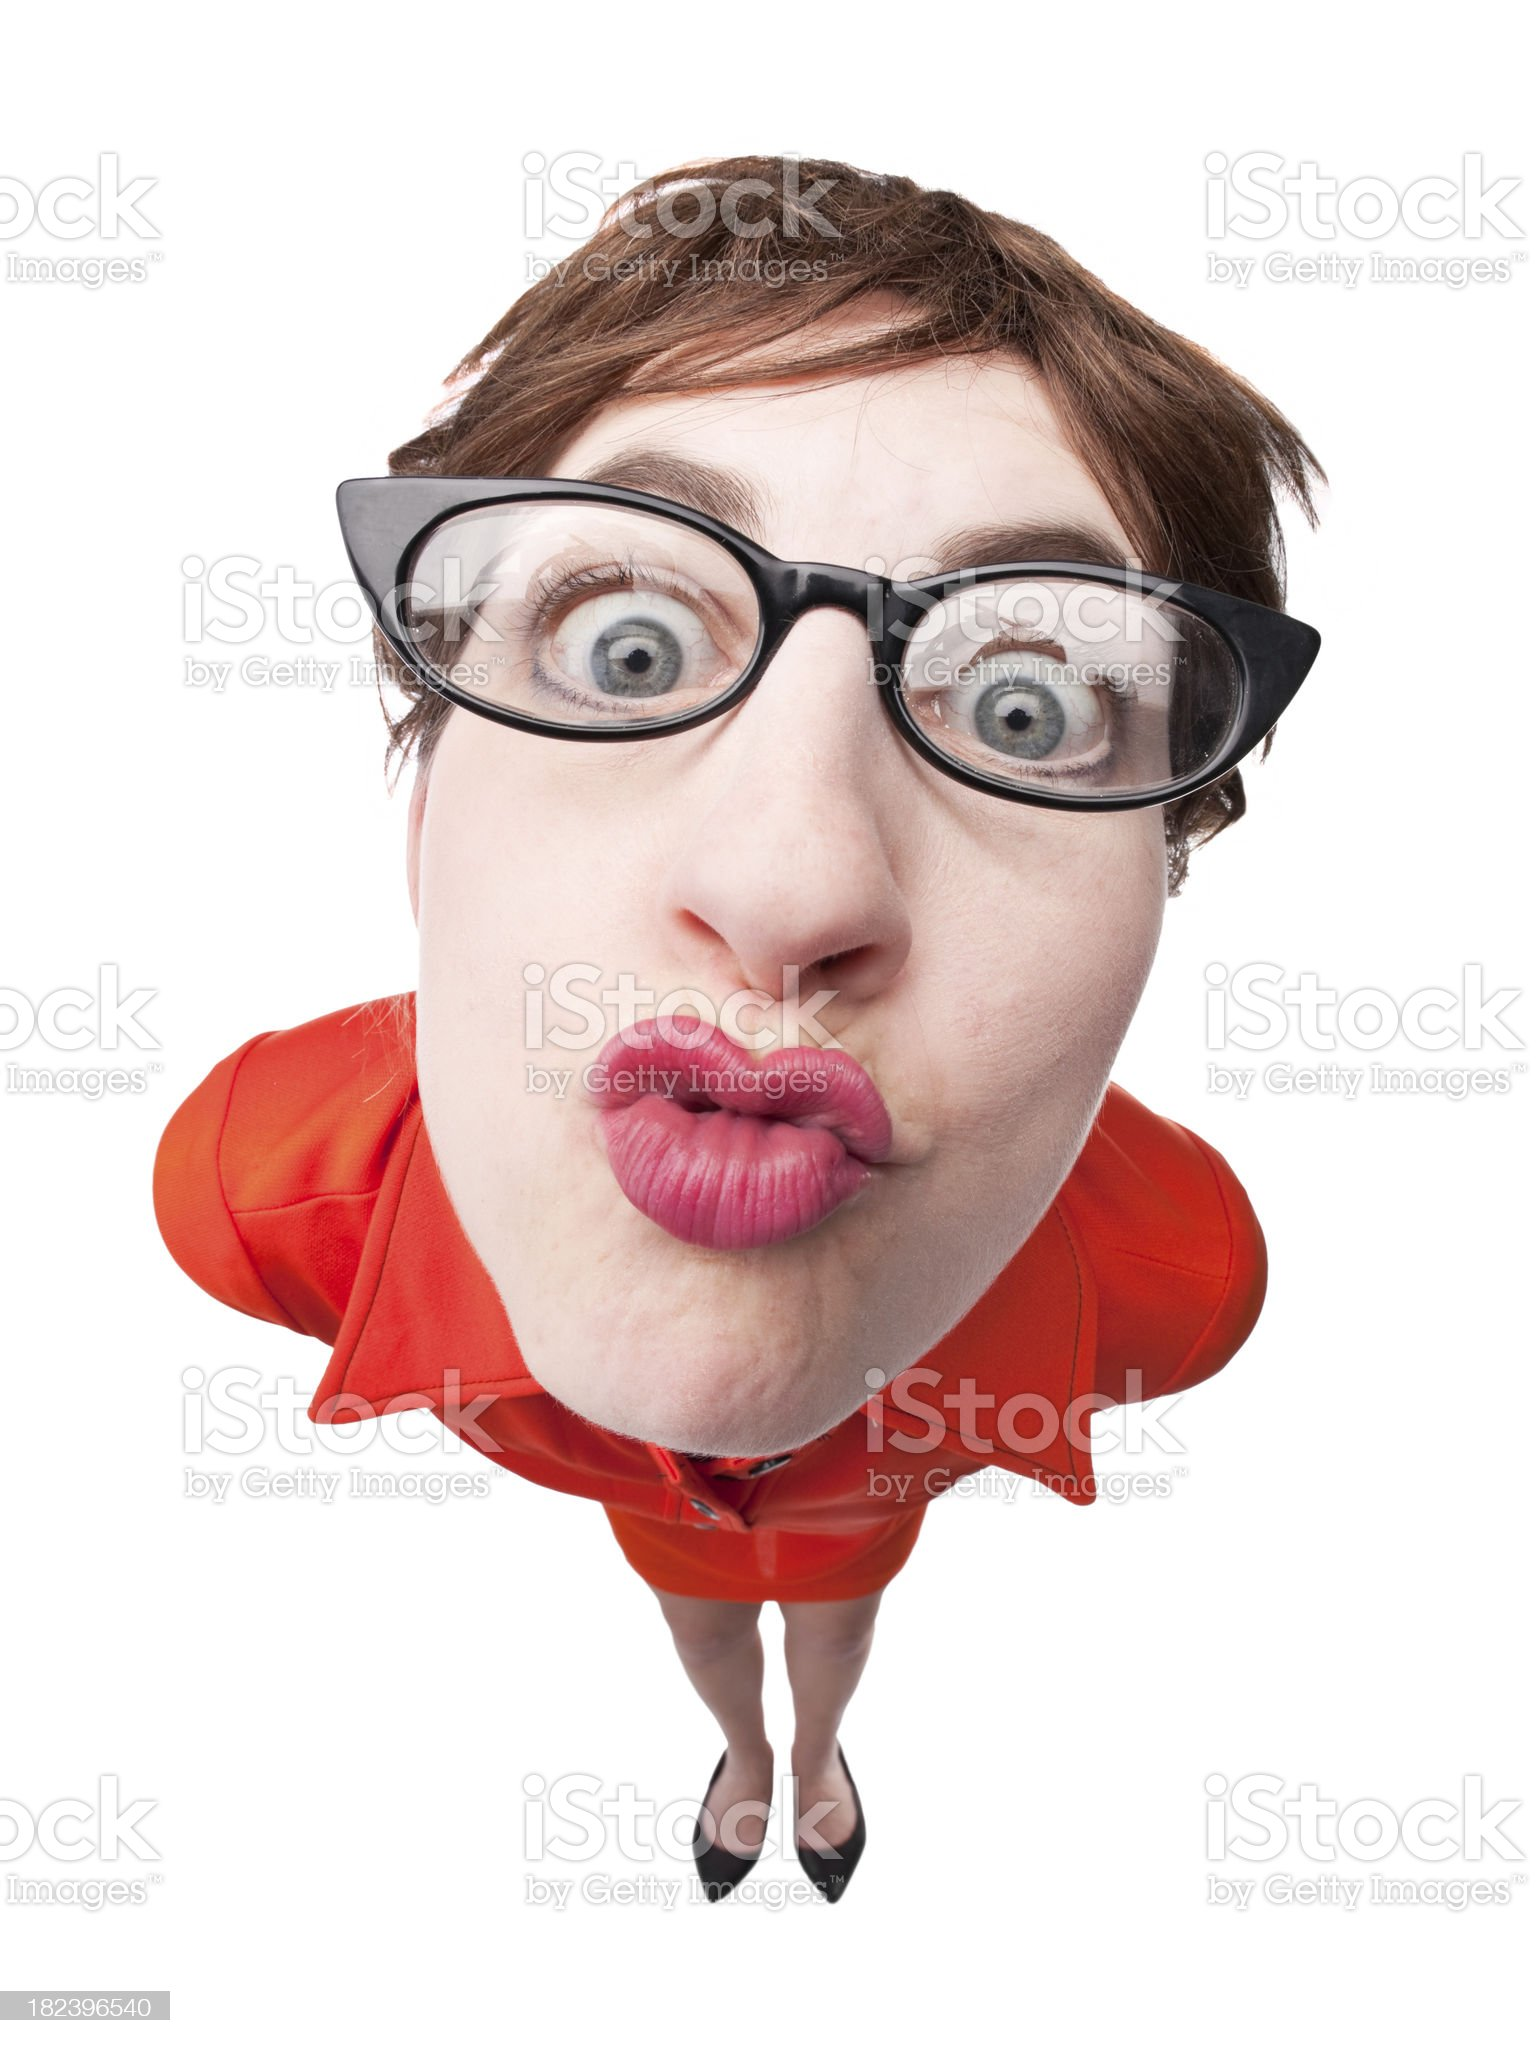 Puckering Geeky Woman royalty-free stock photo